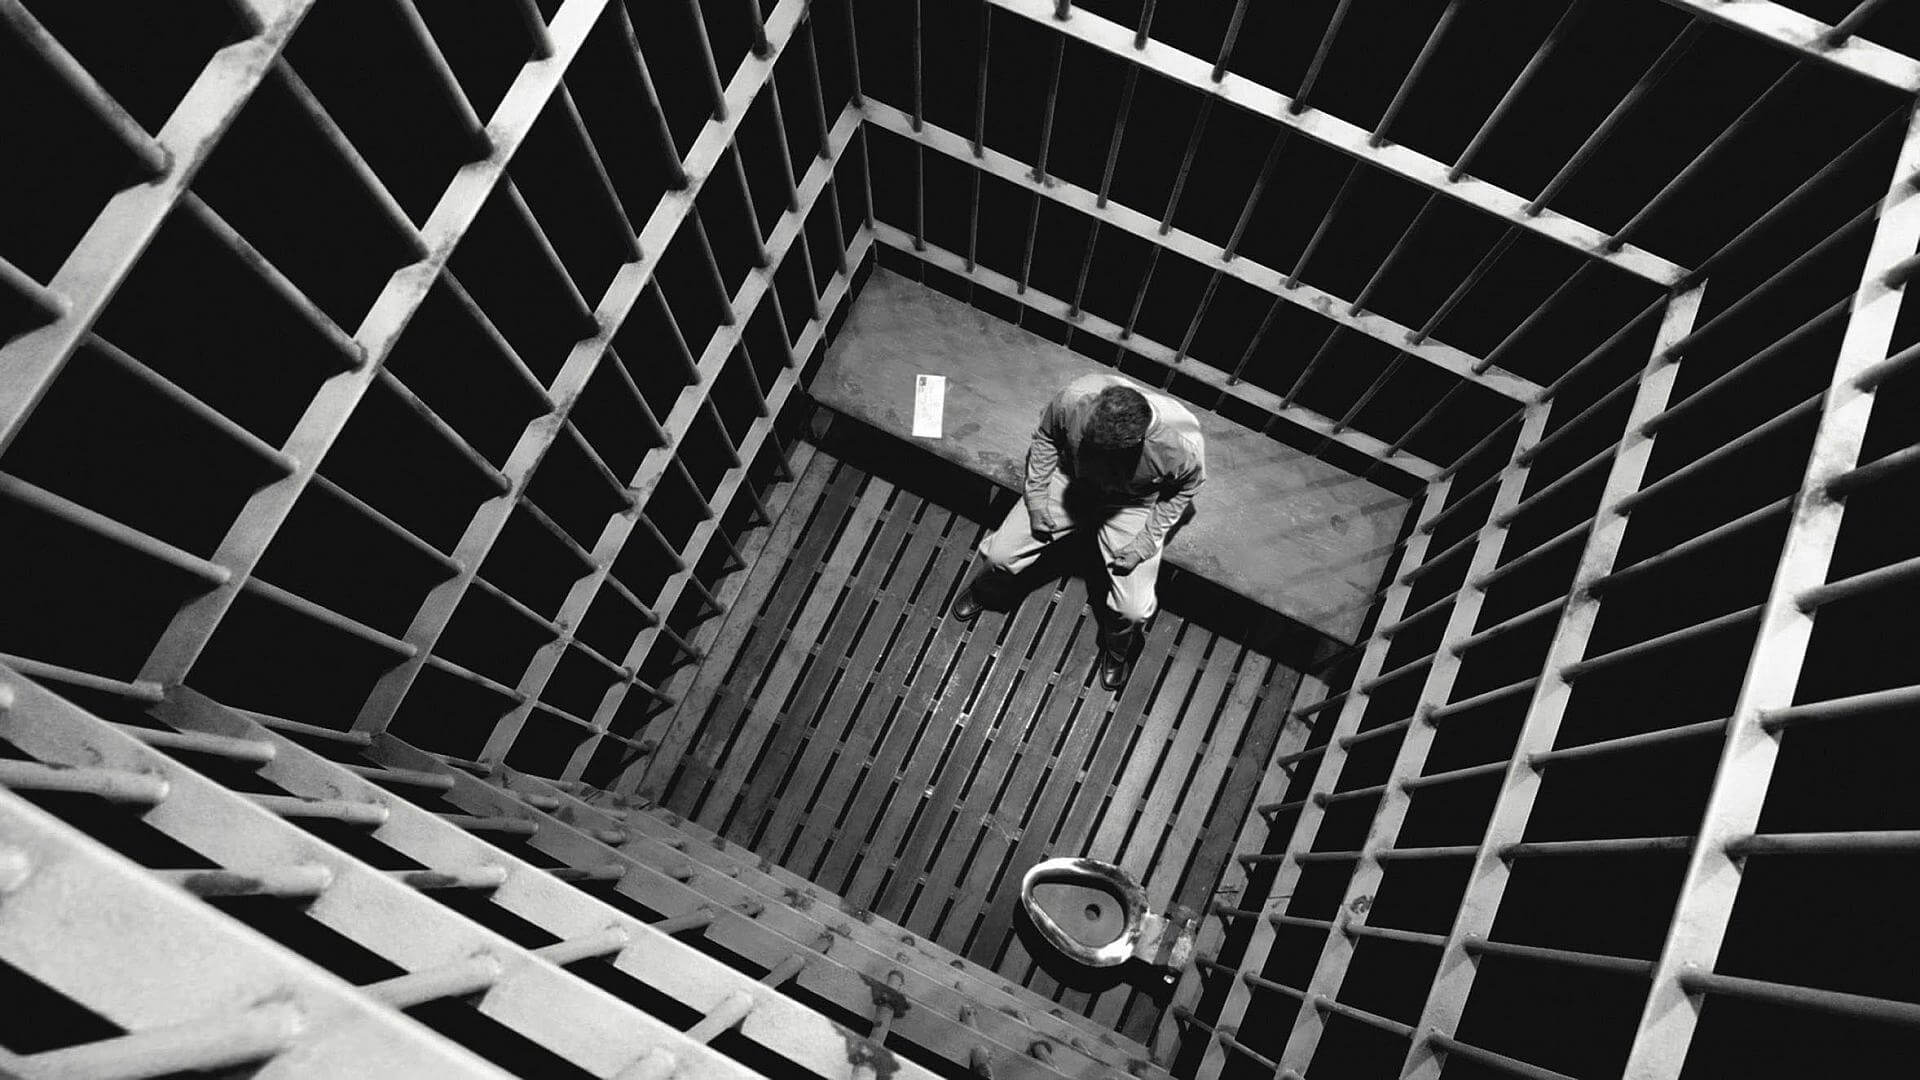 Le syndrome post traumatique en prison?